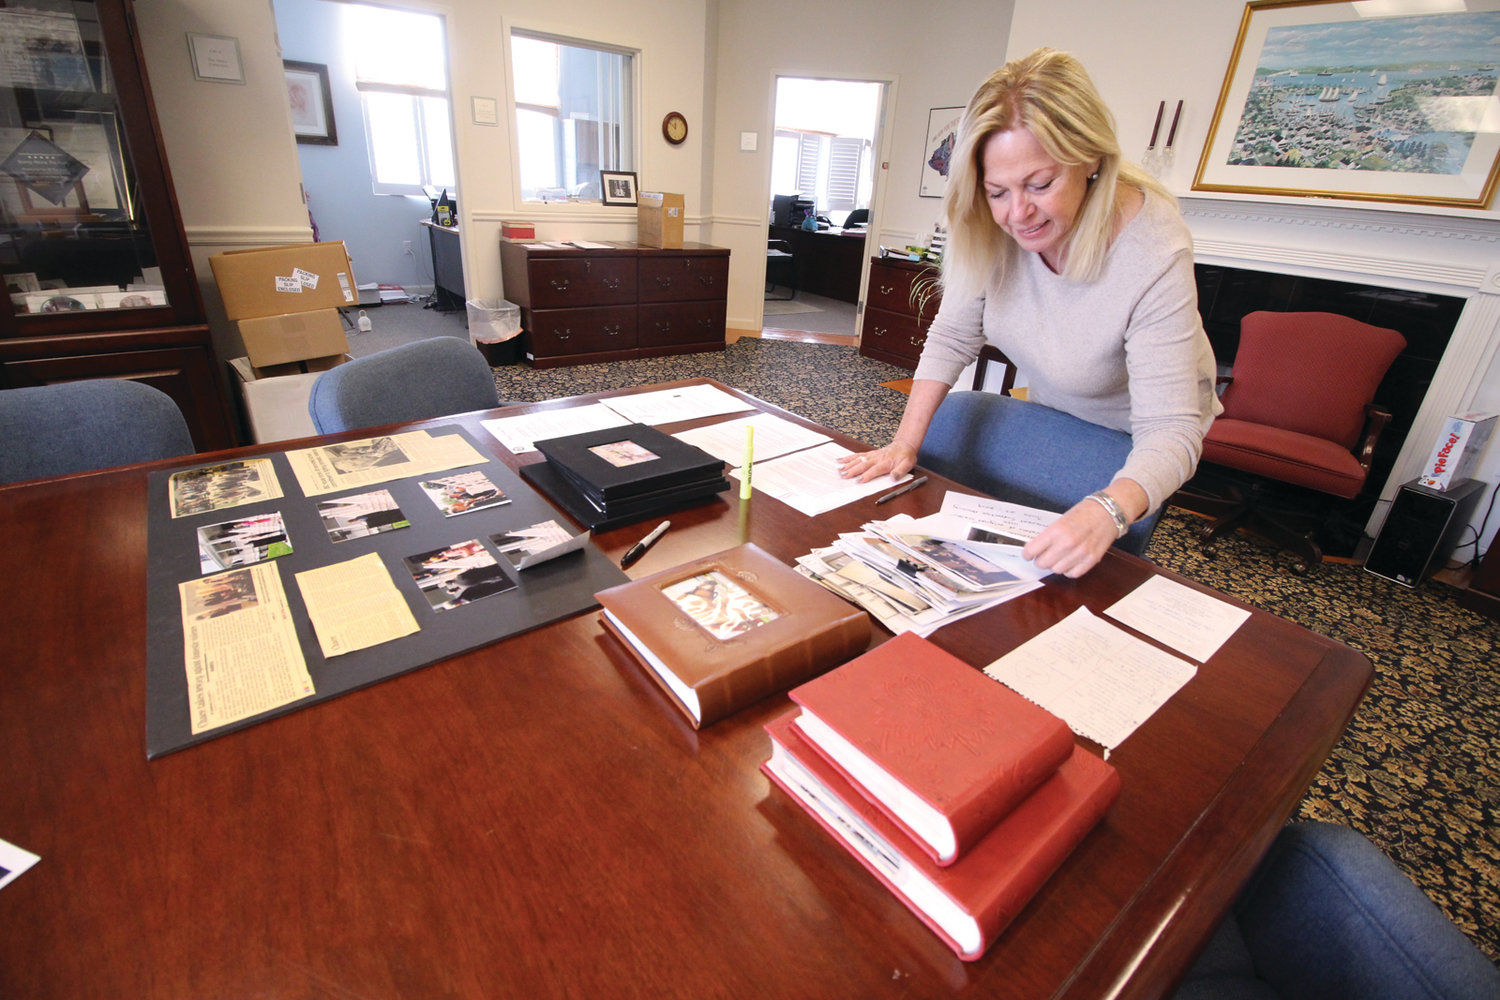 SO MANY ACHIEVEMENTS: Judith Earle, director of the Elizabeth Buffum Chace Center looks over photographs, newspaper clippings and letters documenting the history of the center founded 40 years ago.